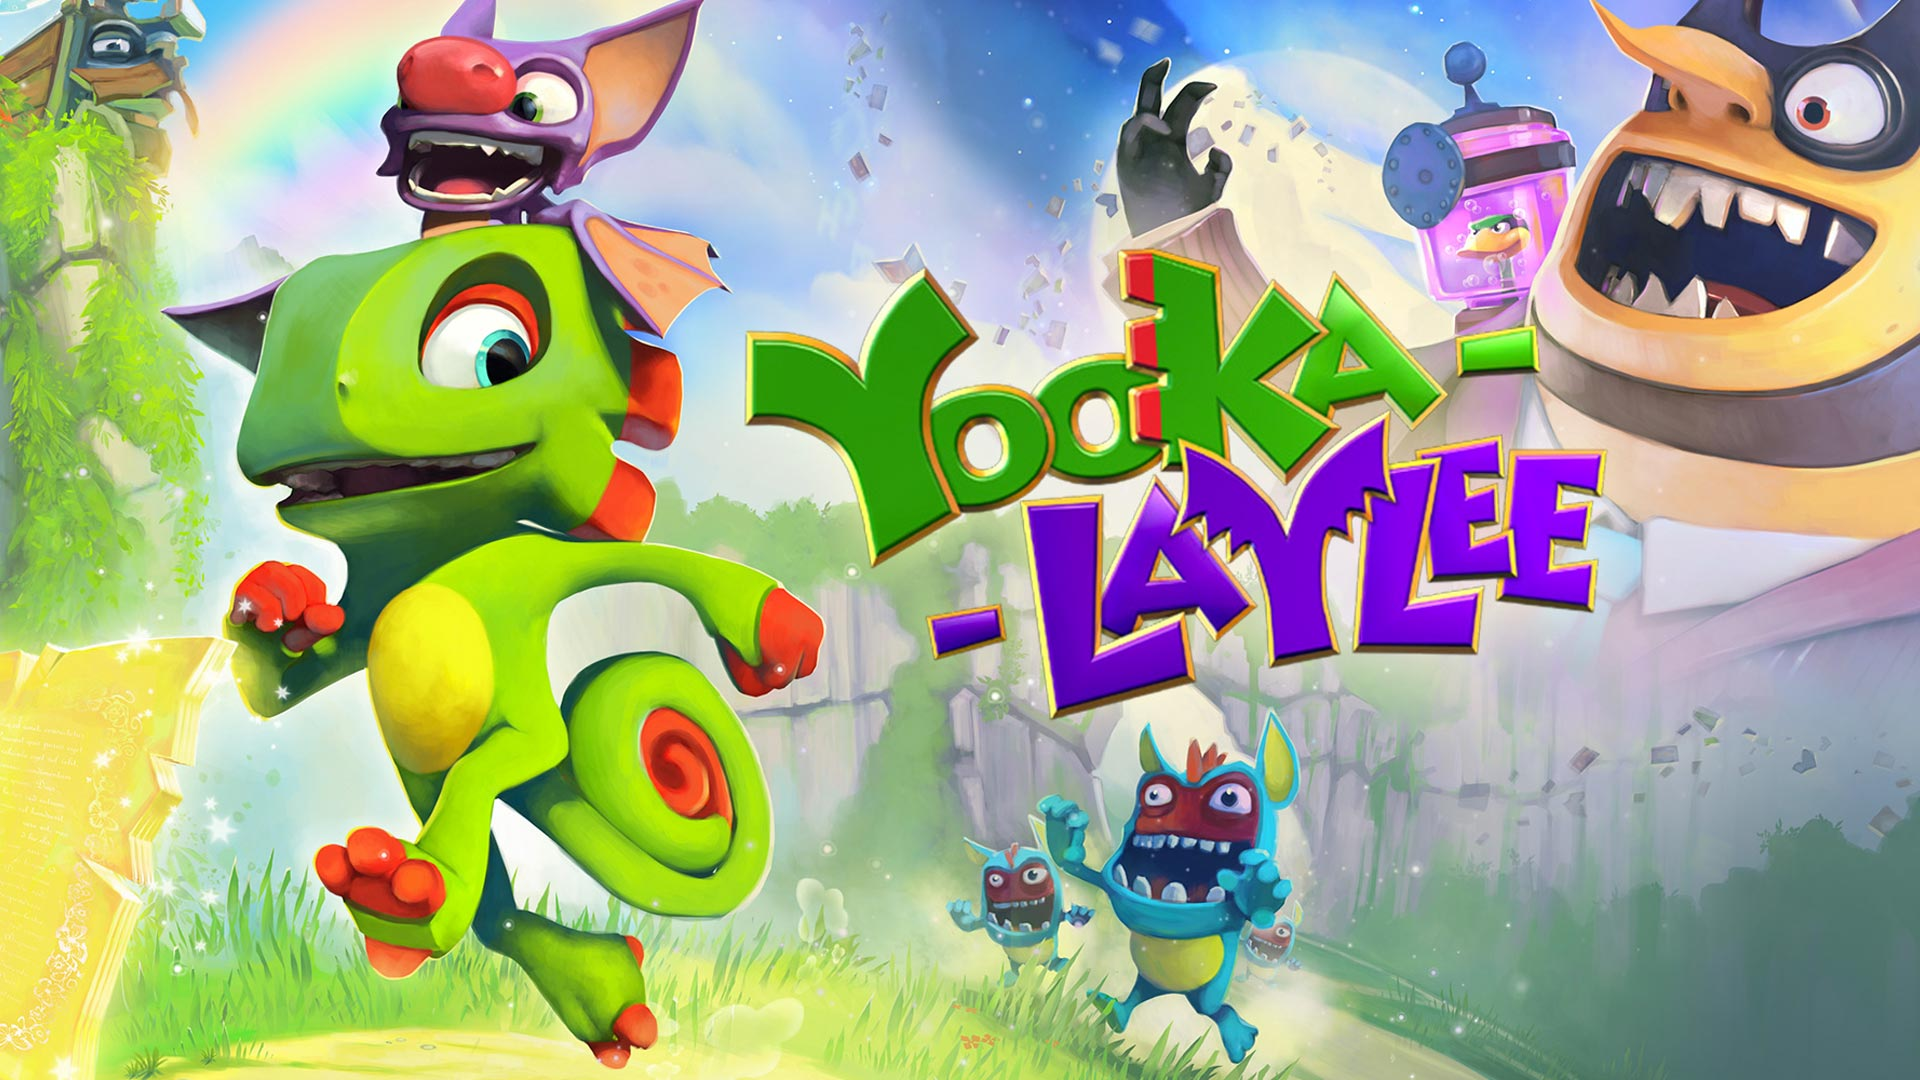 Yooka-Laylee limited run physical edition for Nintendo Switch – pre-orders live now!